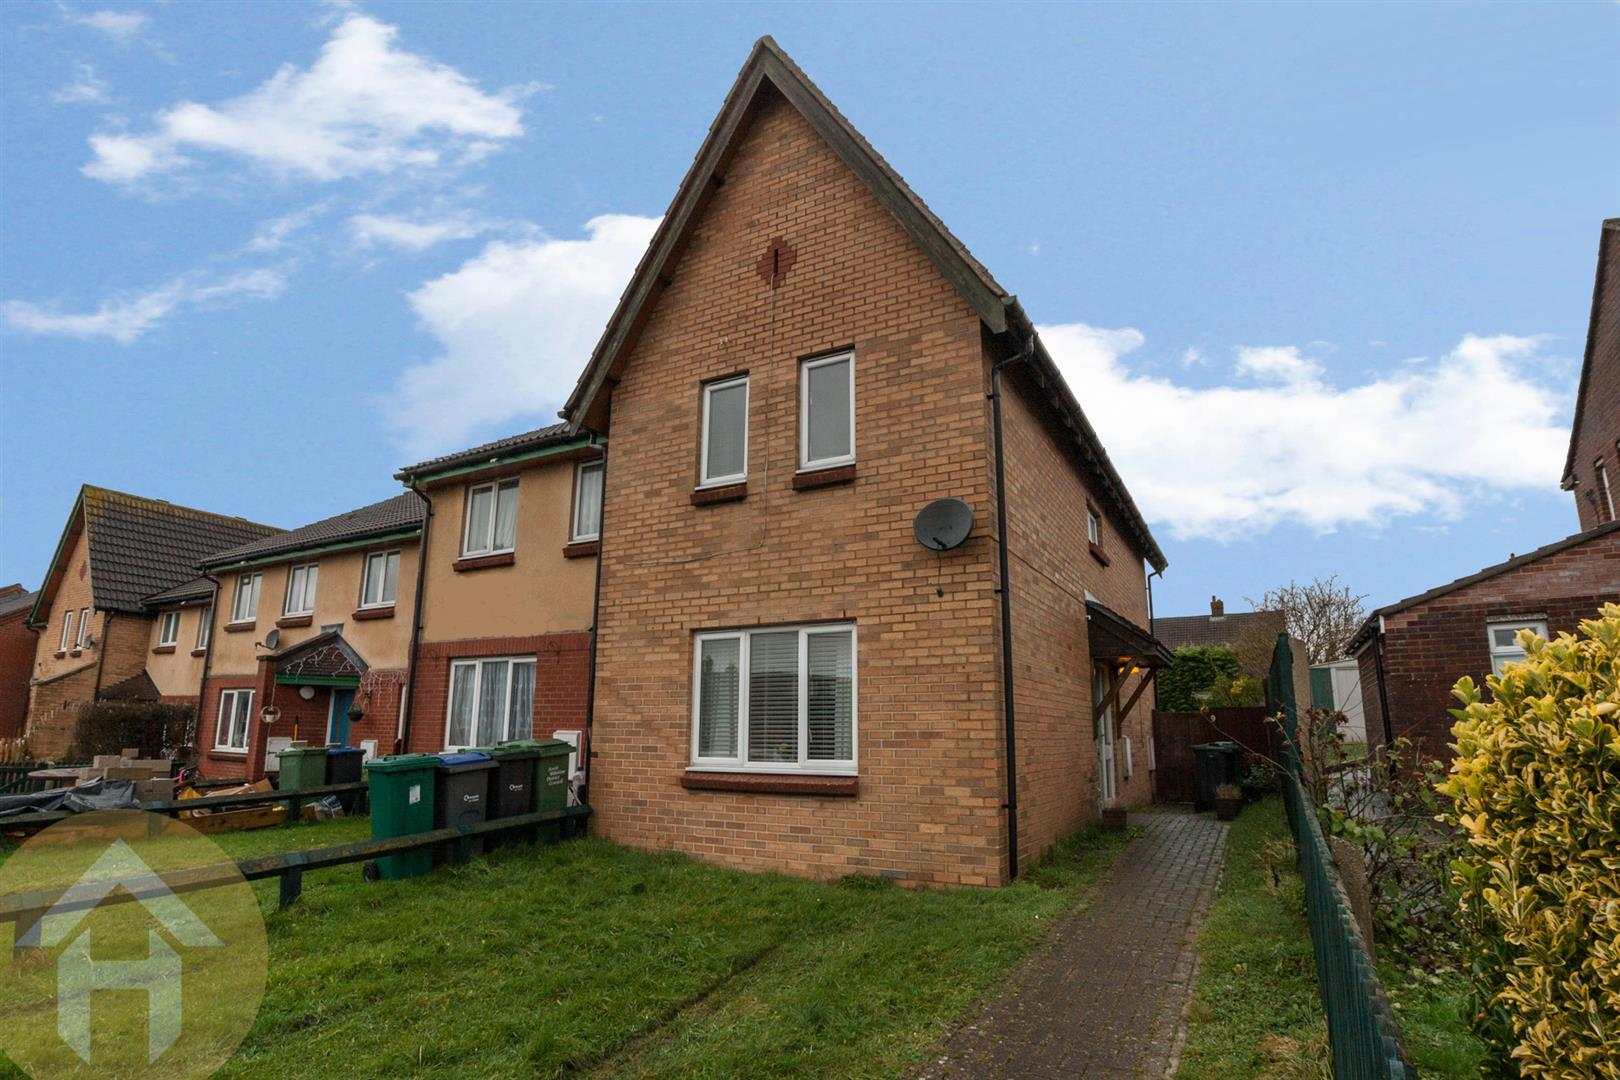 2 Bedrooms End Of Terrace House for sale in Royal Wootton Bassett